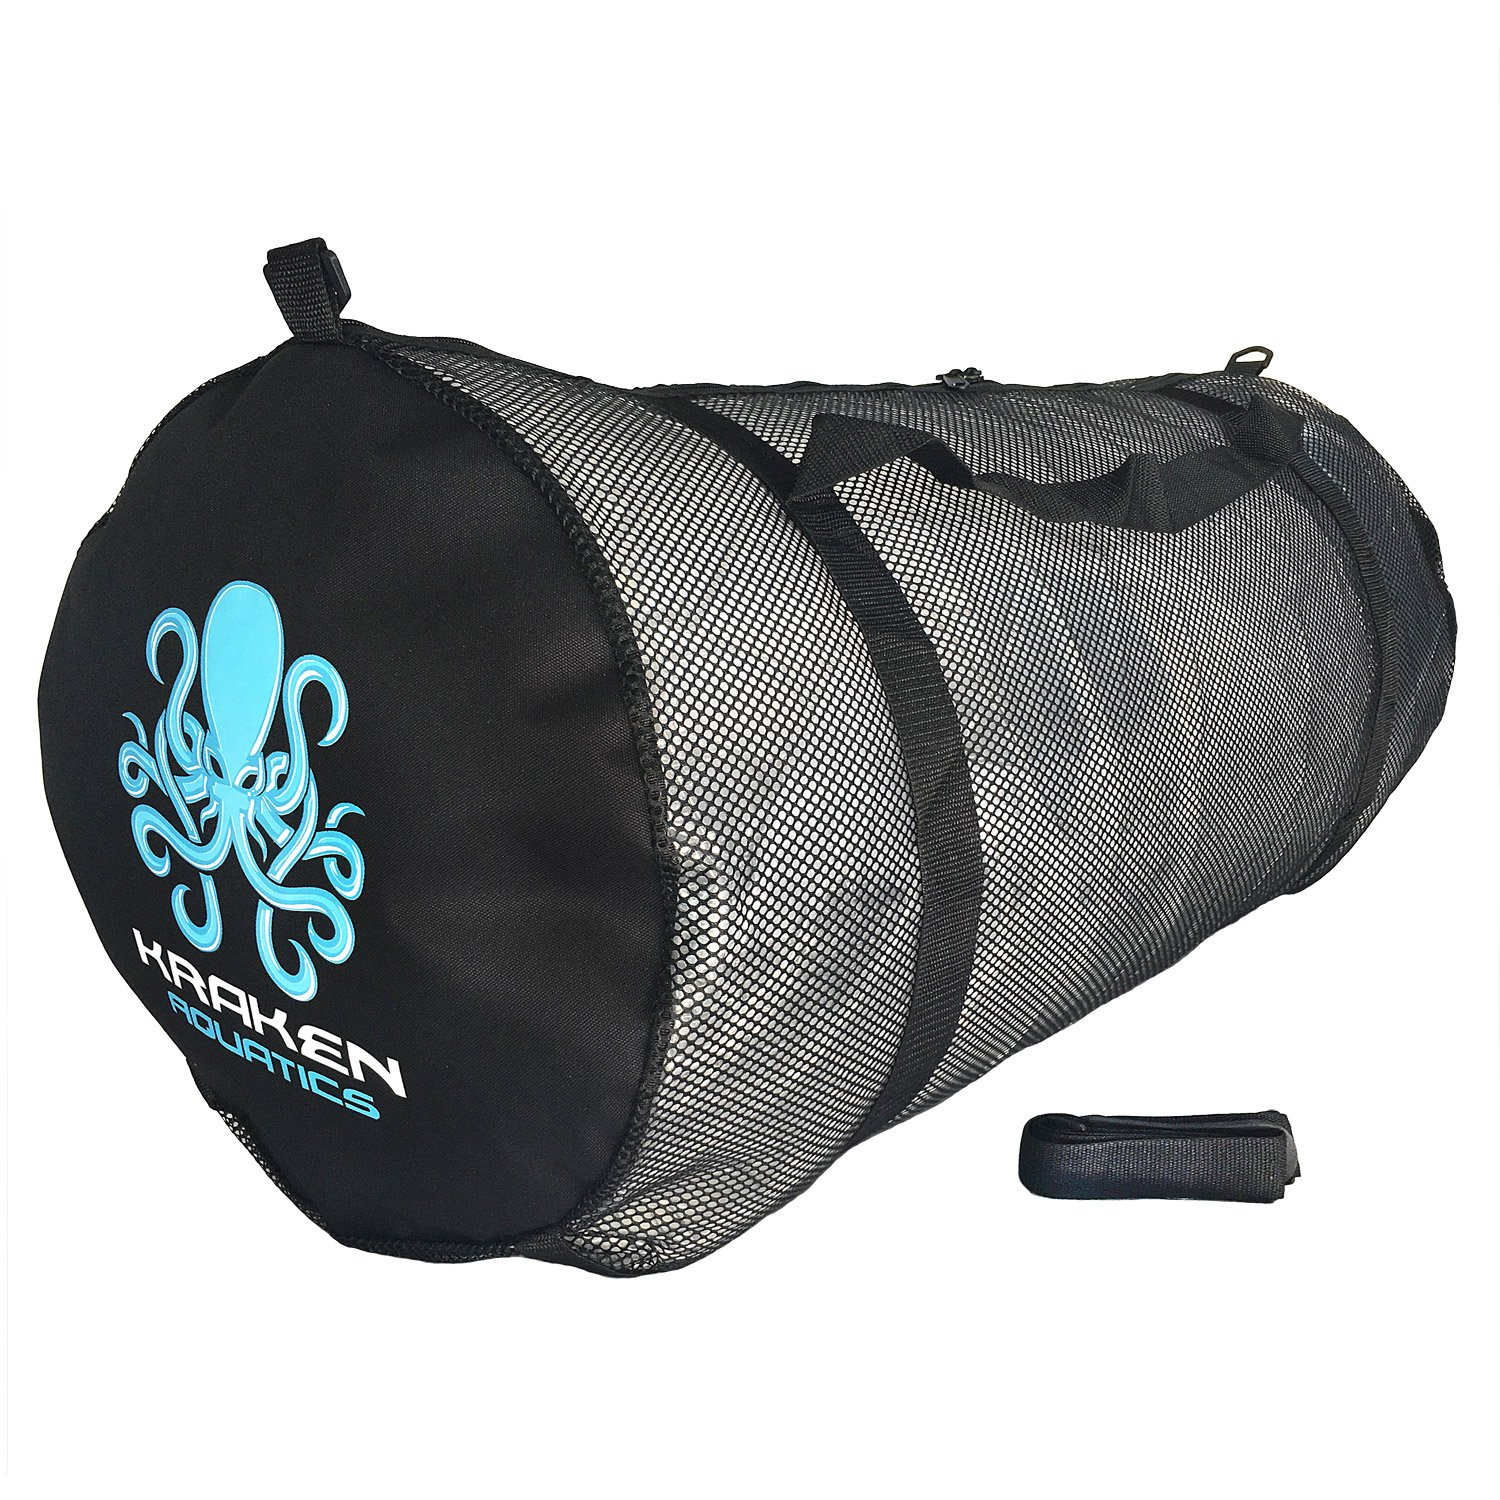 Amazon.com   Kraken Aquatics Mesh Duffle Gear Bag with Shoulder Strap  4165ee1211a6e